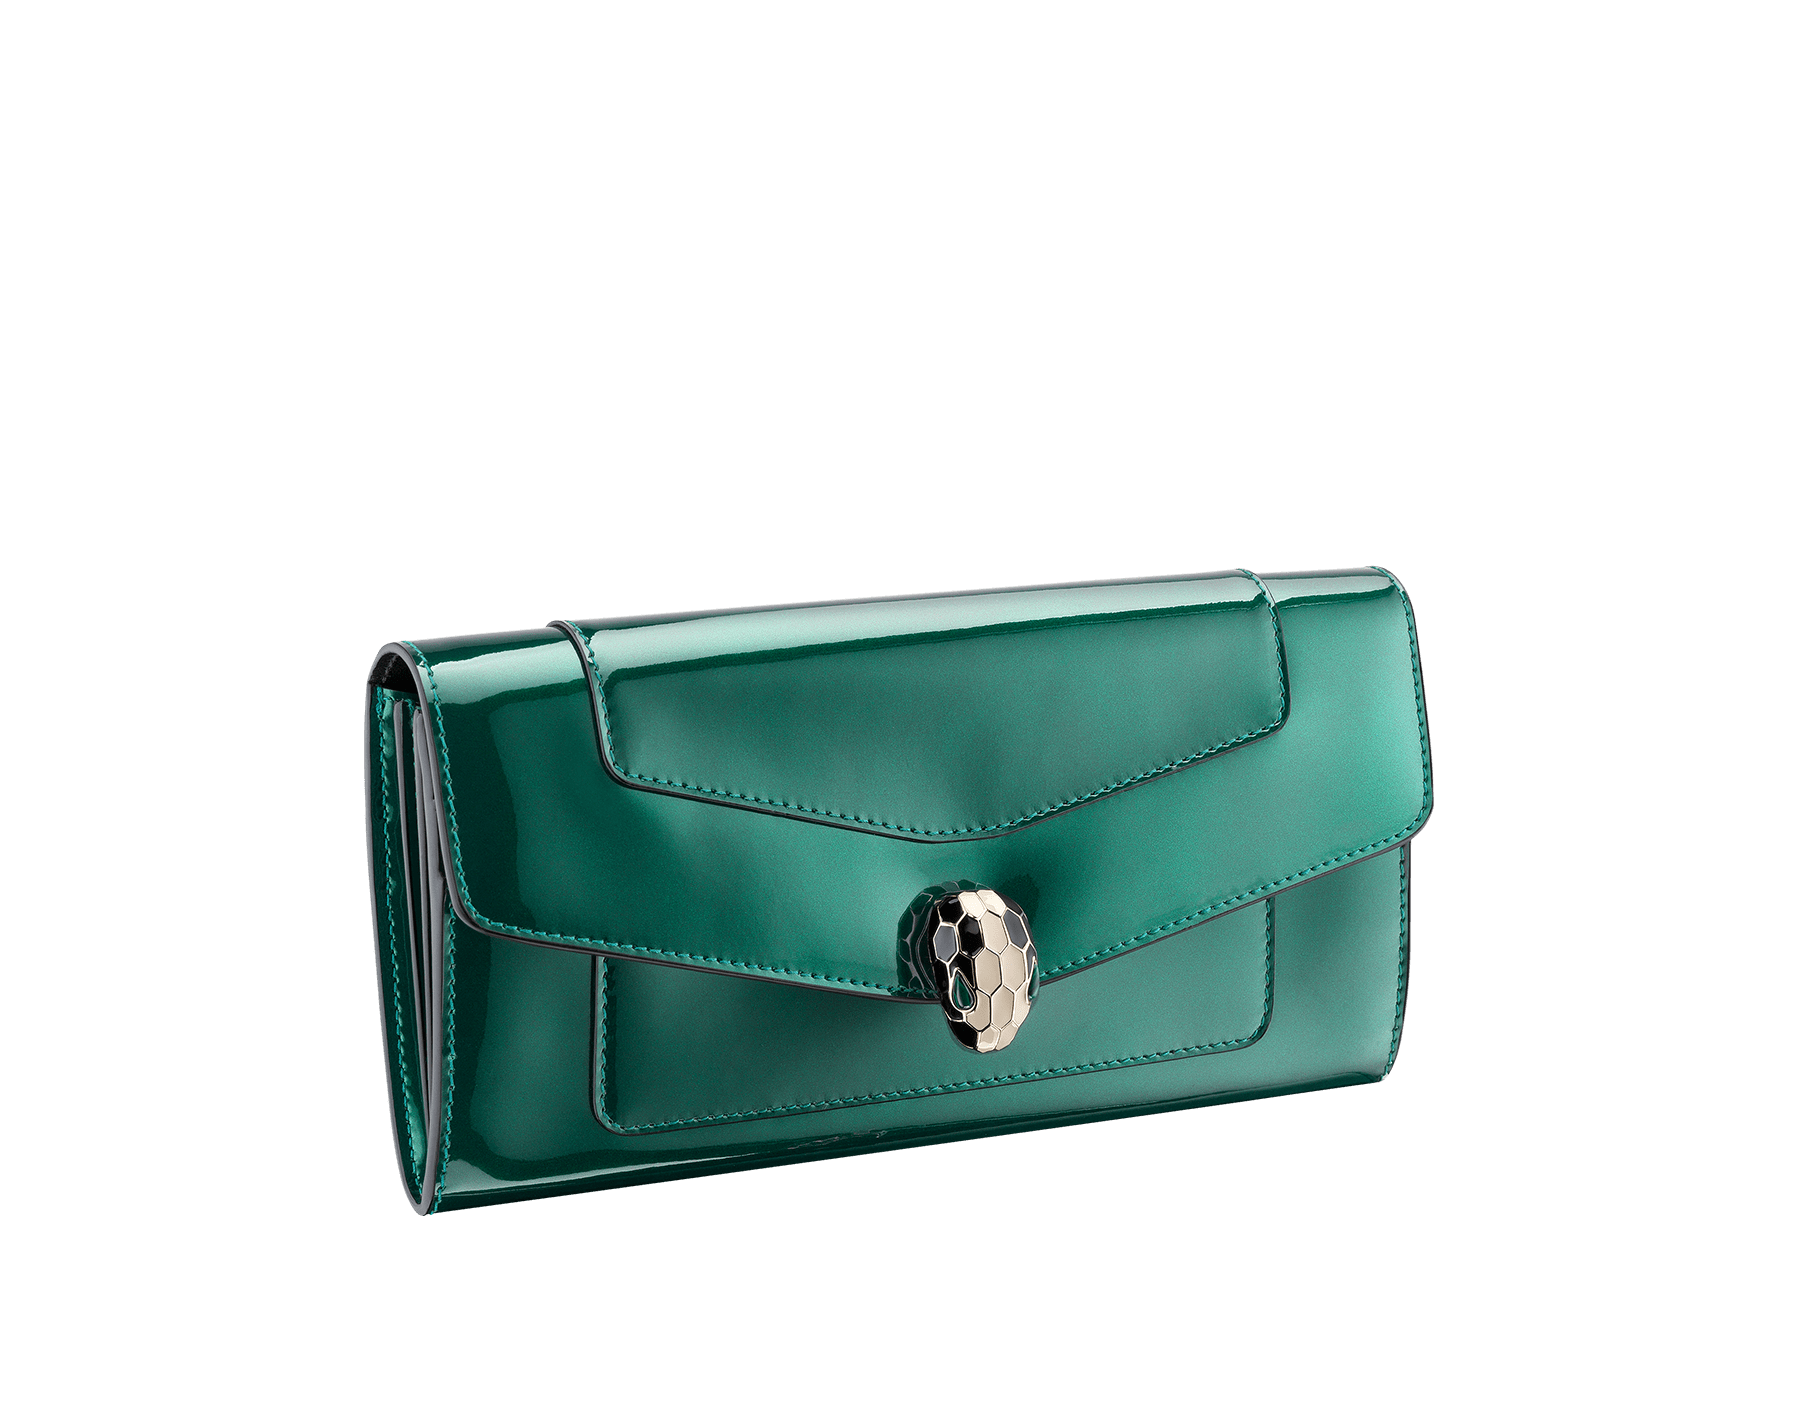 Wallet pochette in forest emerald brushed metallic calf leather and black calf leather with black nappa lining. Brass light gold plated hardware. Serpenti head stud closure in black and white enamel with eyes in green malachite. 283675 image 1